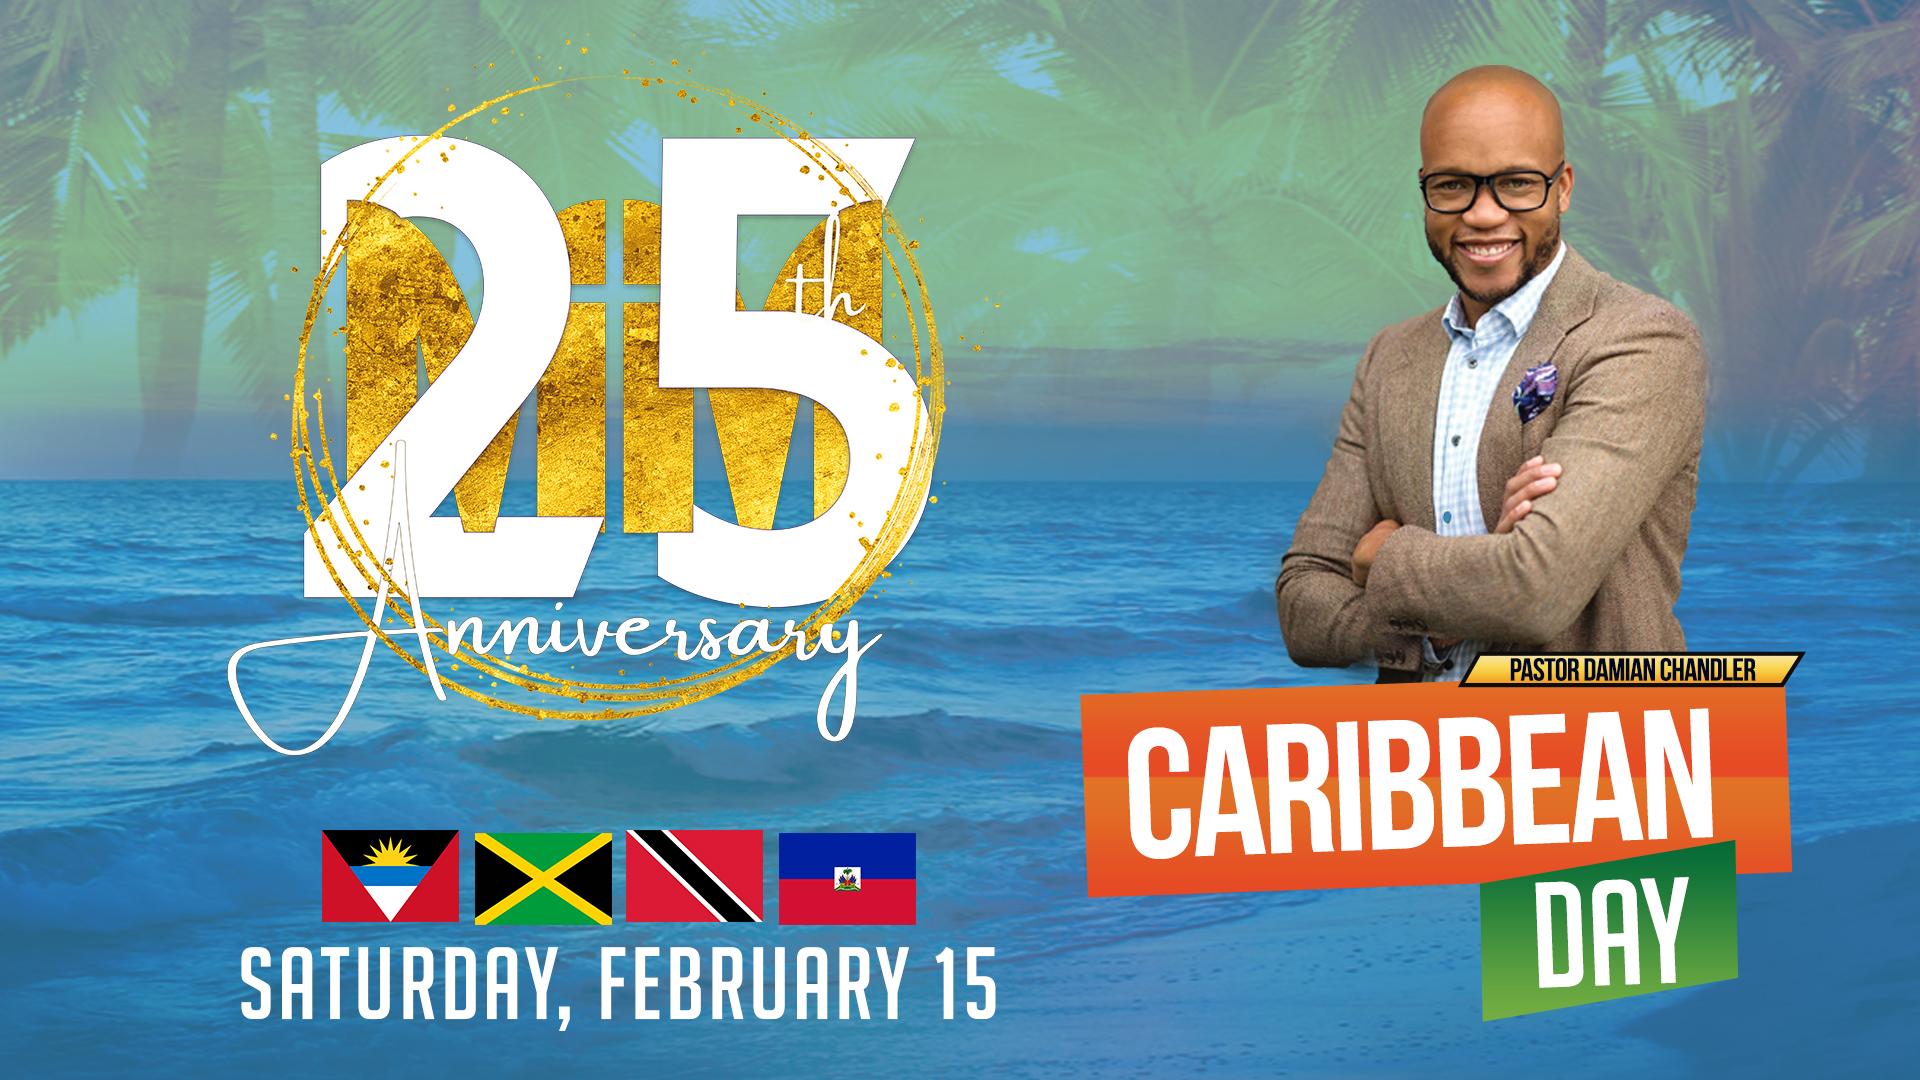 Caribbean Day 2020 Image